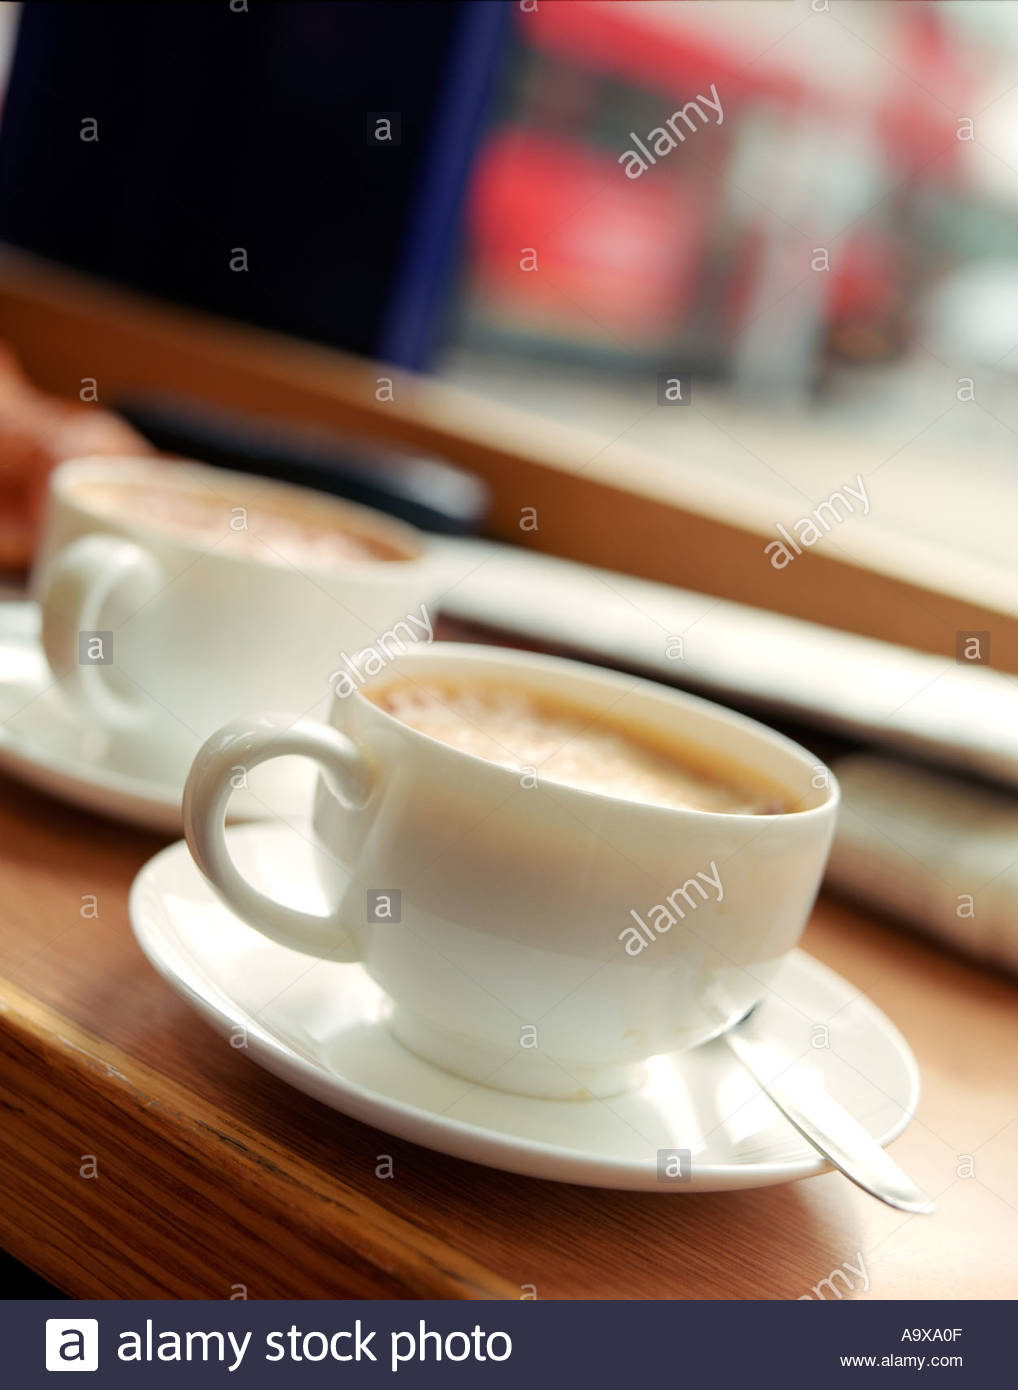 detail color coffee cup in window of coffee shop showing life passing the window with a croissant in the background adding depth - Stock Image